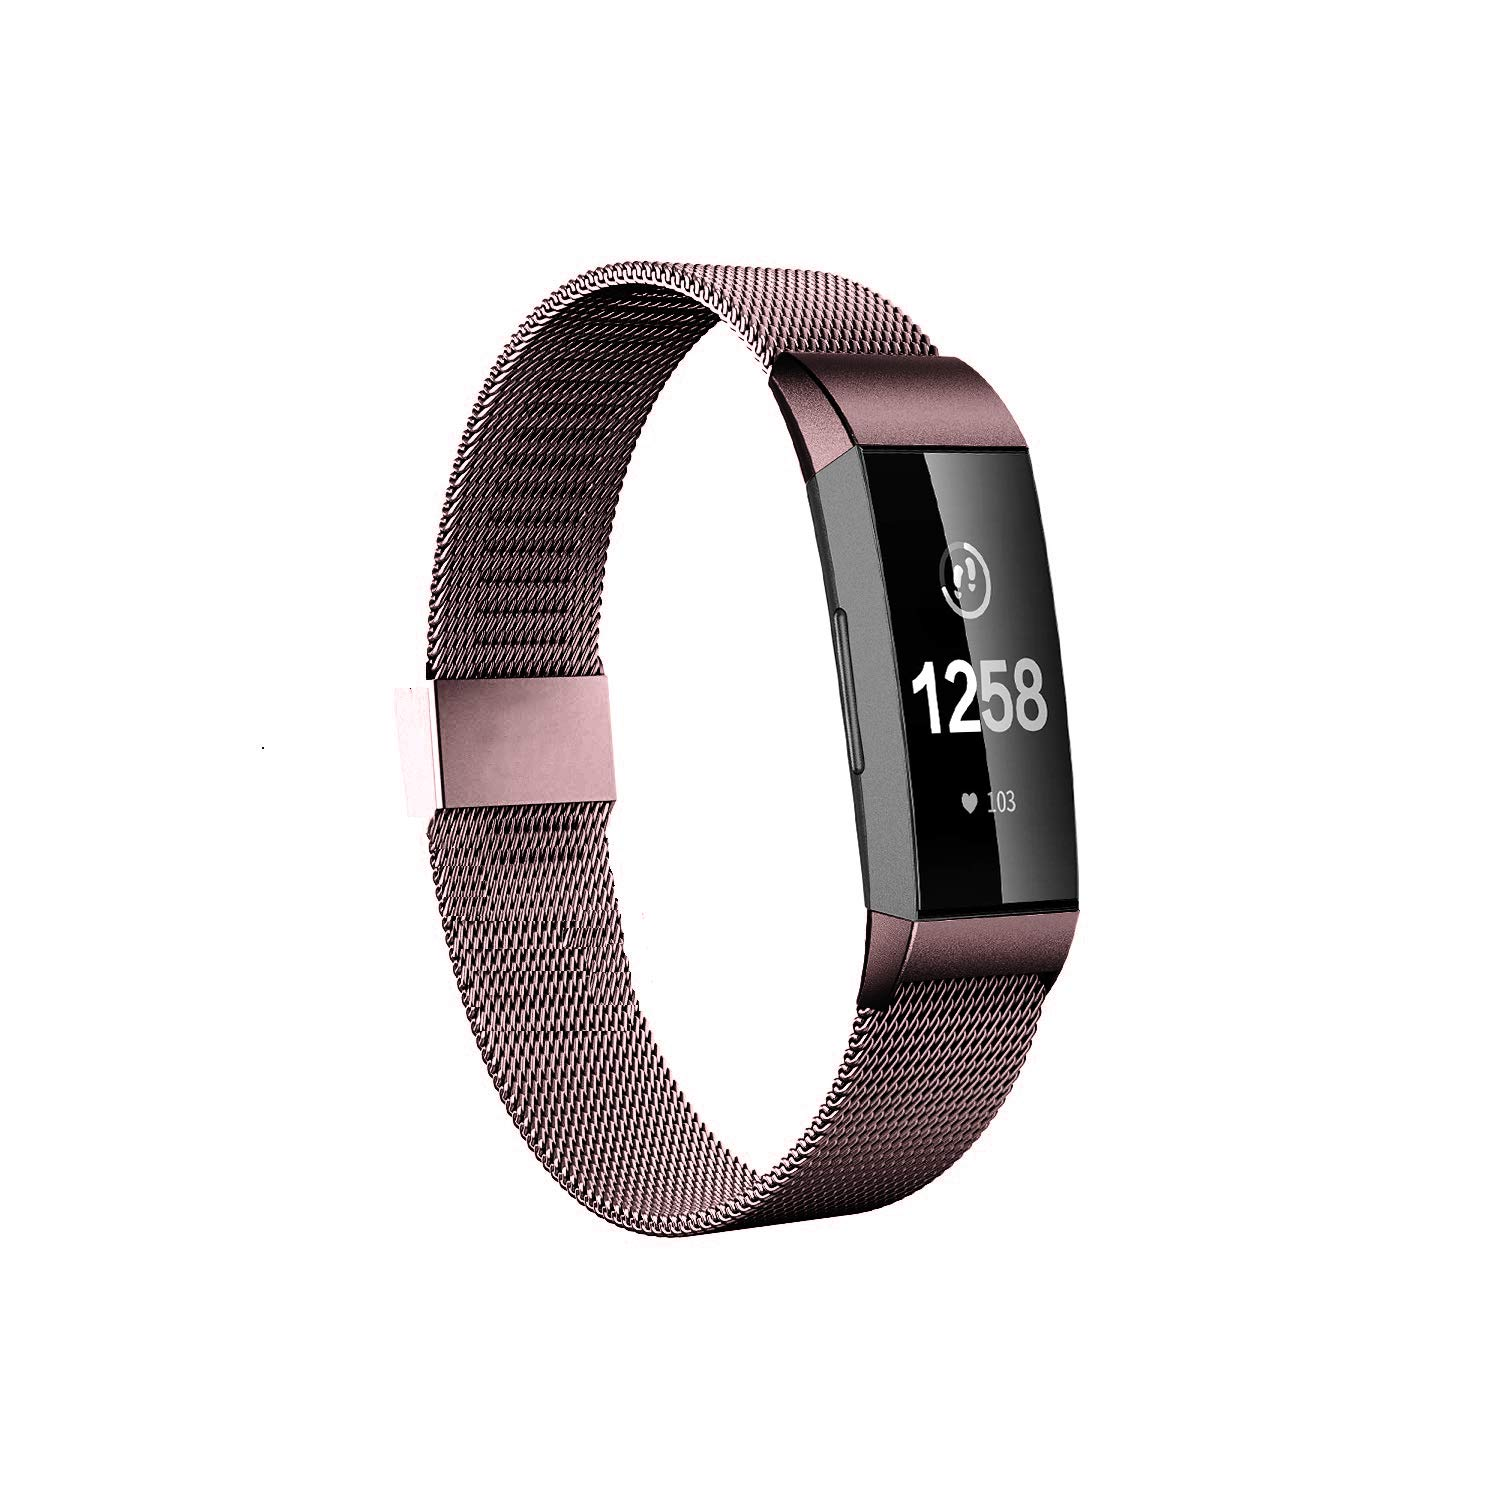 Fitlink Stainless Steel Bands Replacement for Charge 3 and Charge 3 SE for Women Men,Multi Color Multi Size(Coffee,Large)